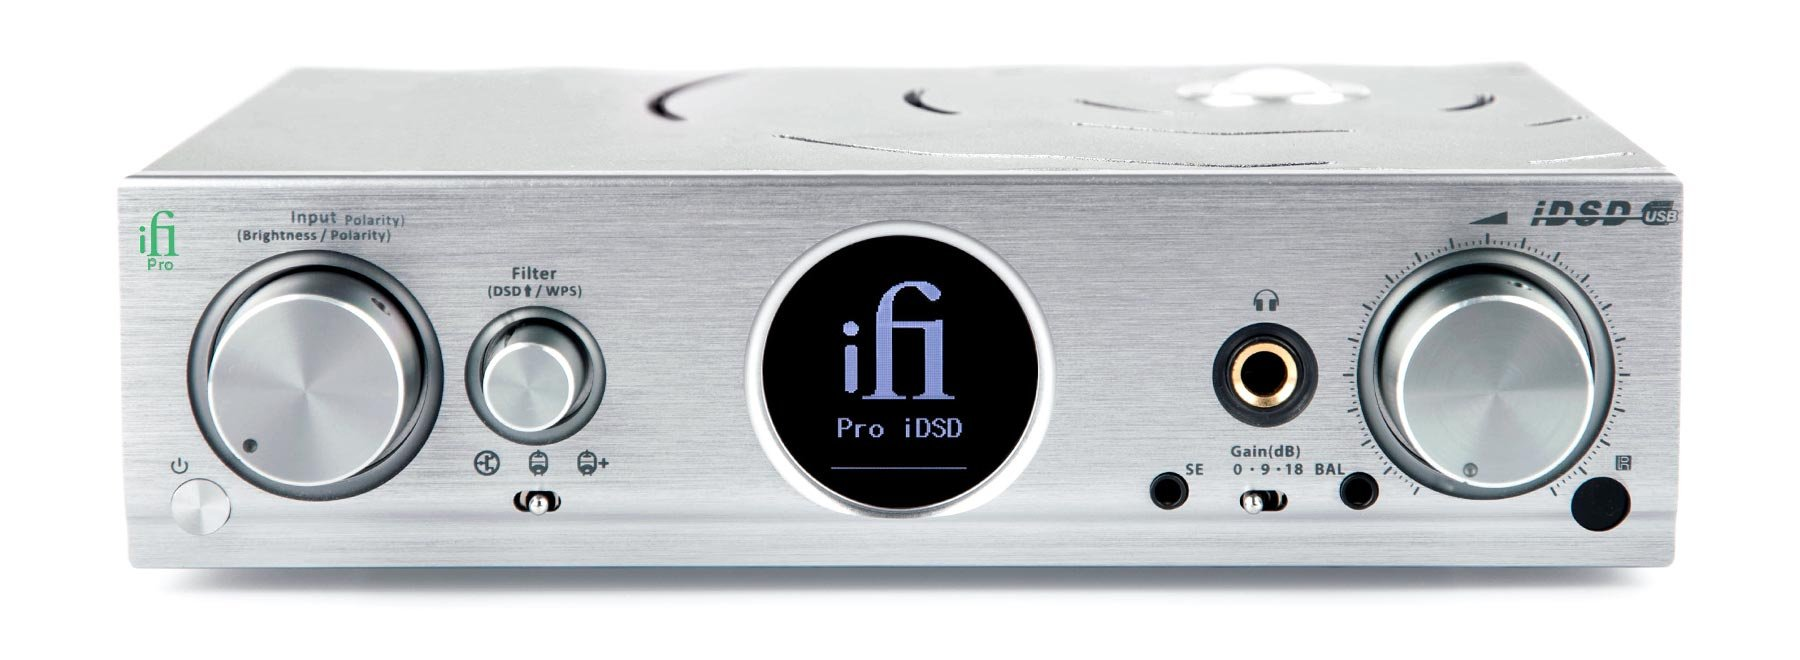 My Quest for a New DAC, Part 4 - iFi Pro iDSD (and friends)